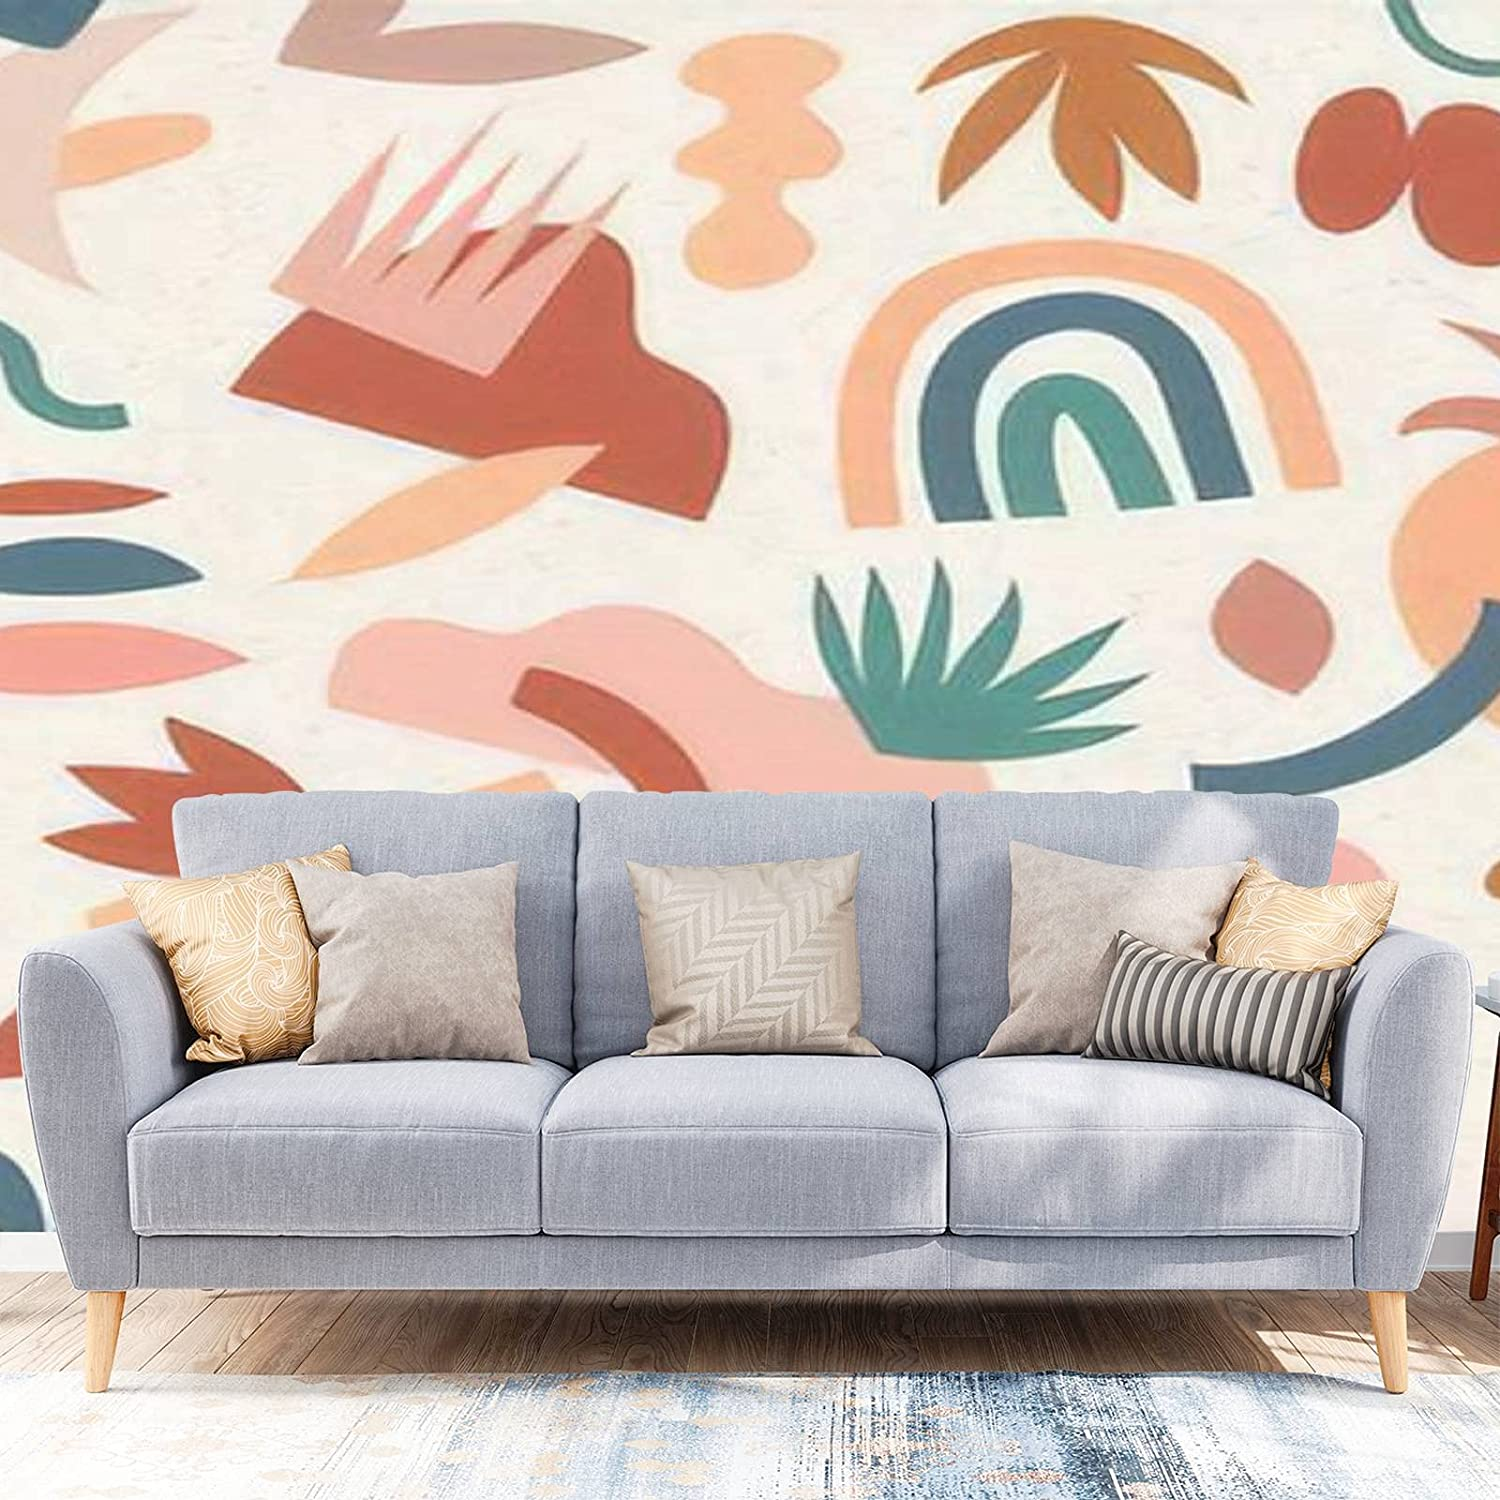 Wallpaper Peel and Stick Modern Japan Maker New Patt Ranking integrated 1st place Abstract Aesthetic Seamless